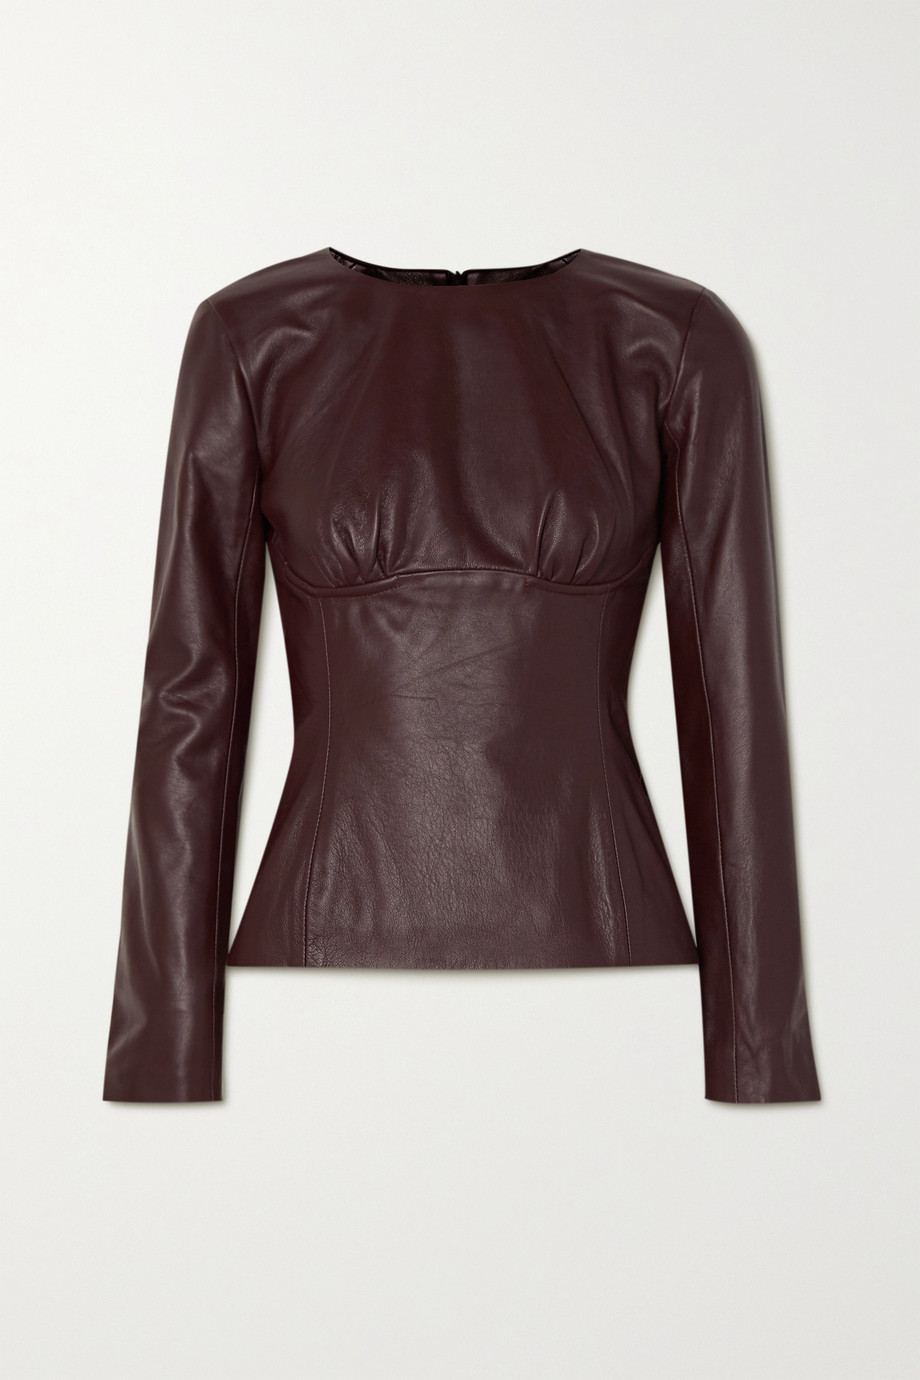 Christopher Esber Charli gathered leather top